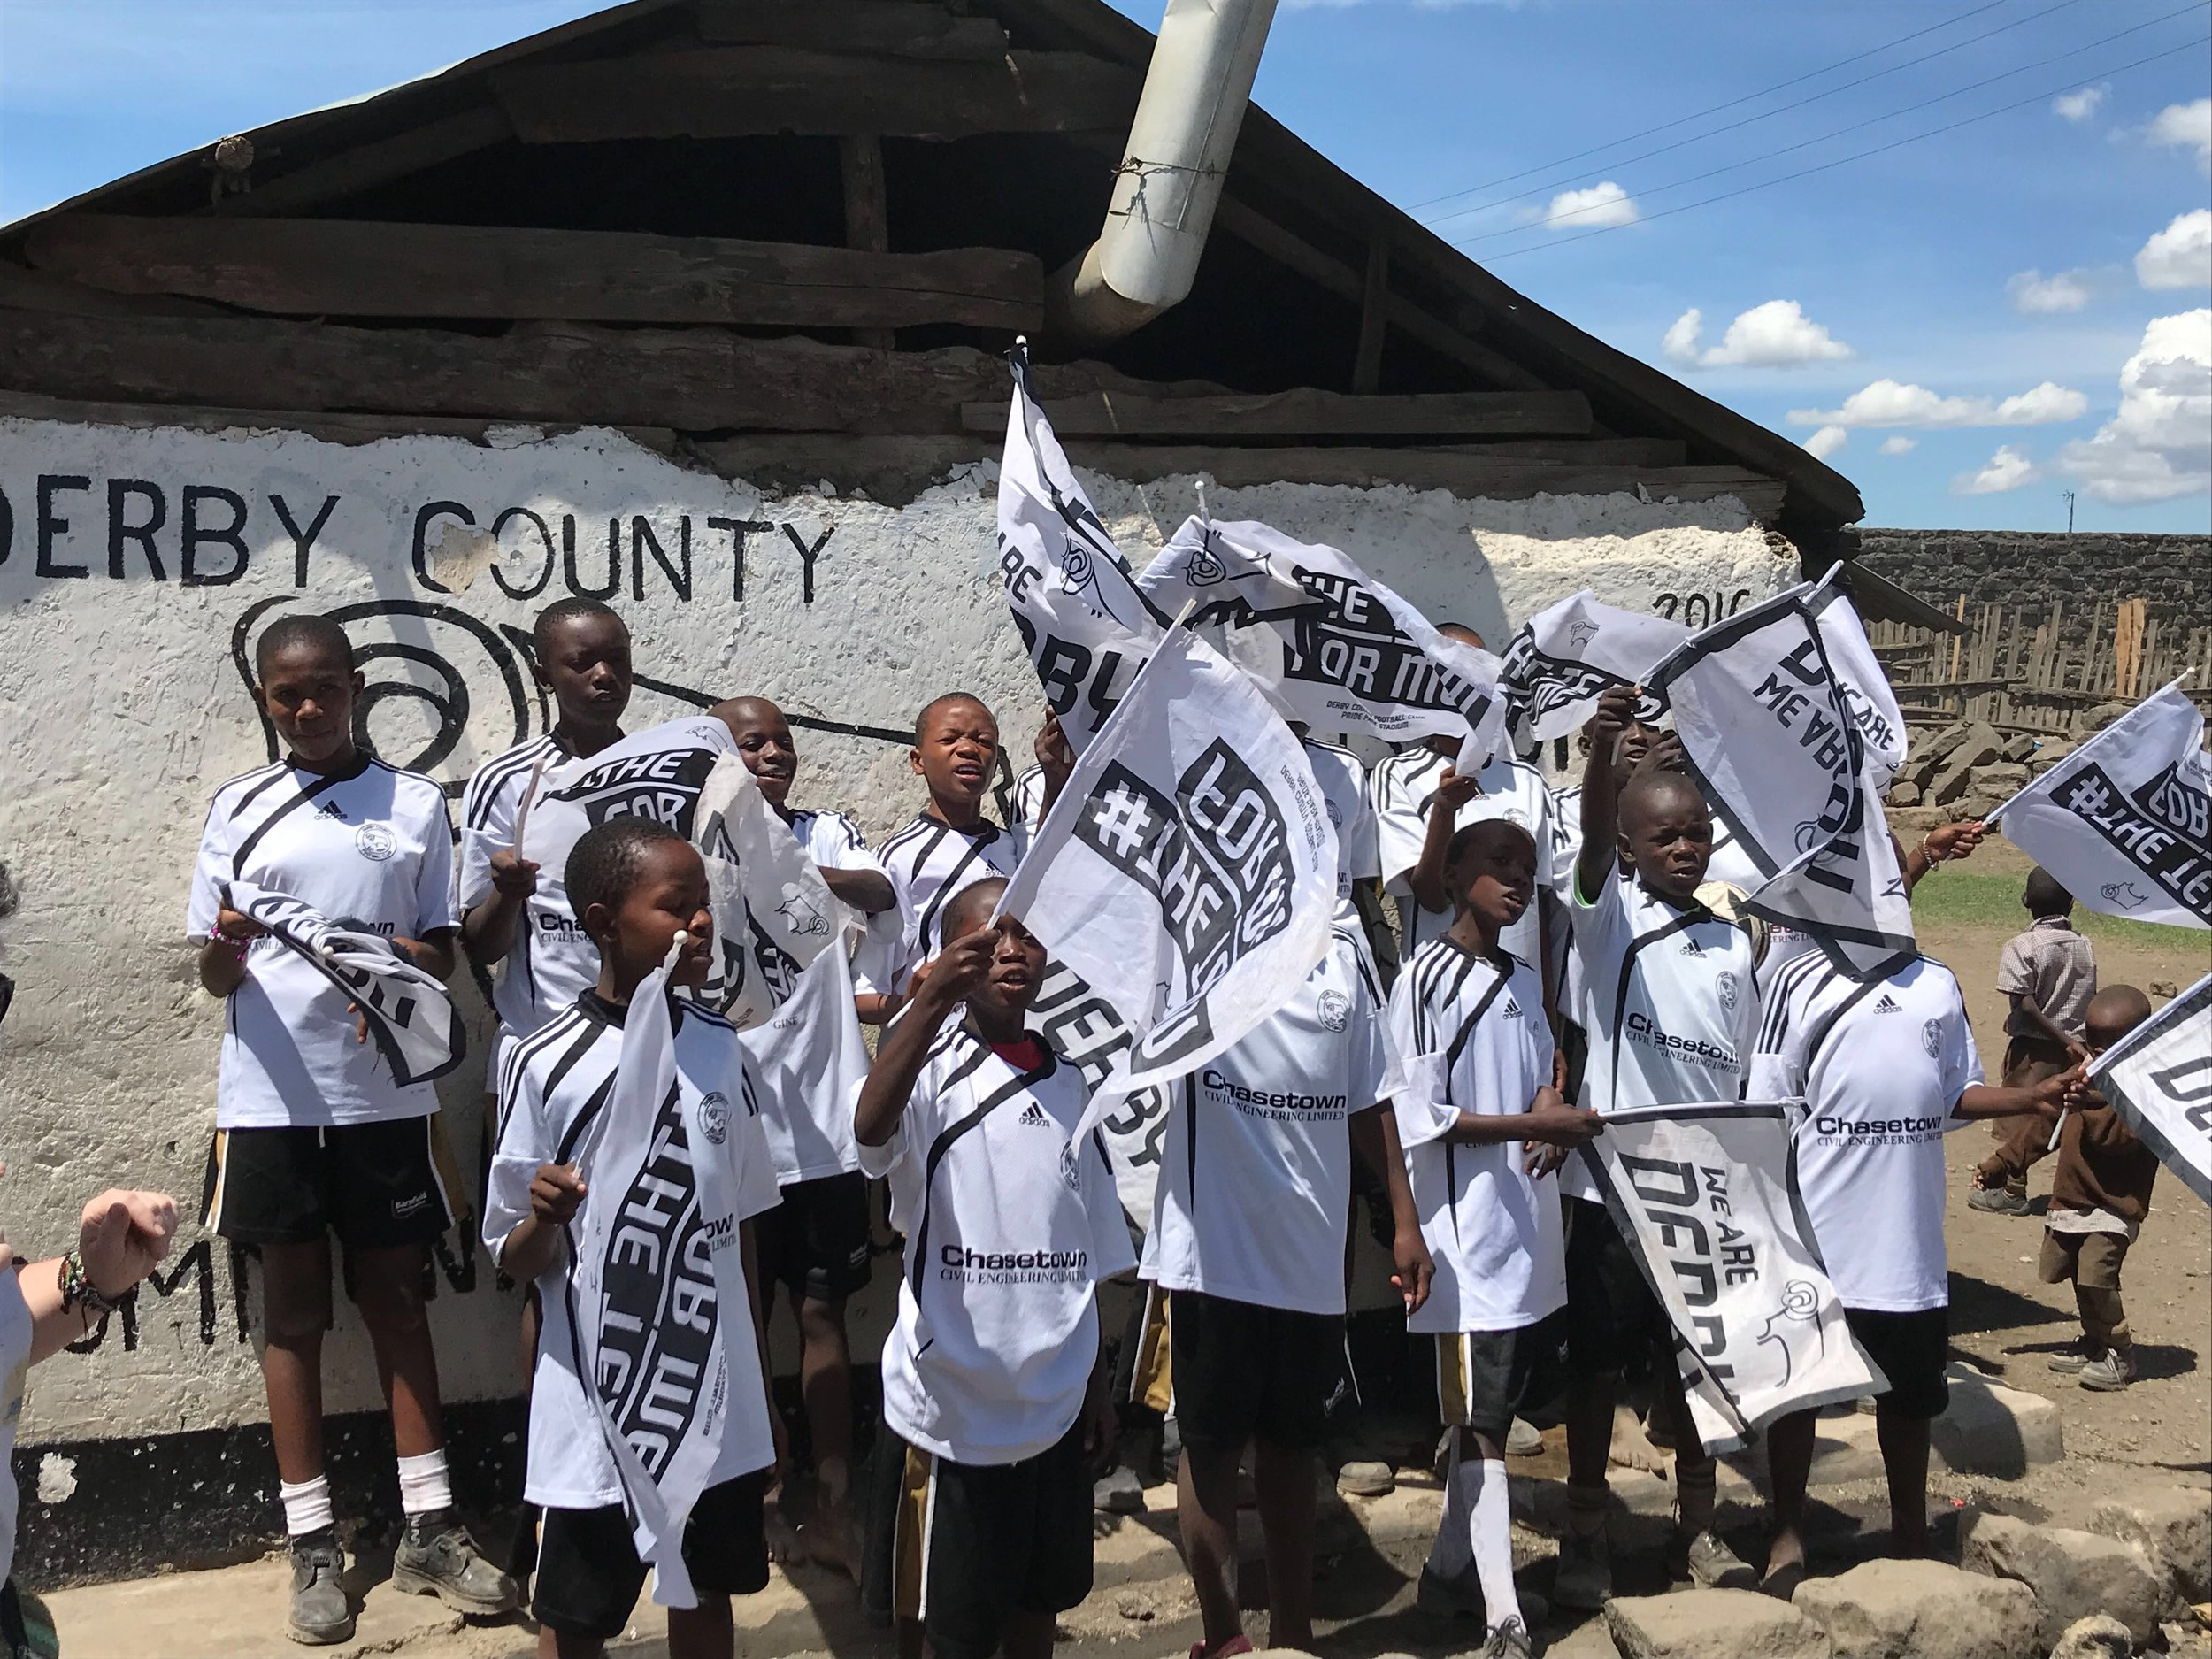 Derby County Community Trust's hugely successful Rams in Kenya project. Penguin PR: public relations, media and communications